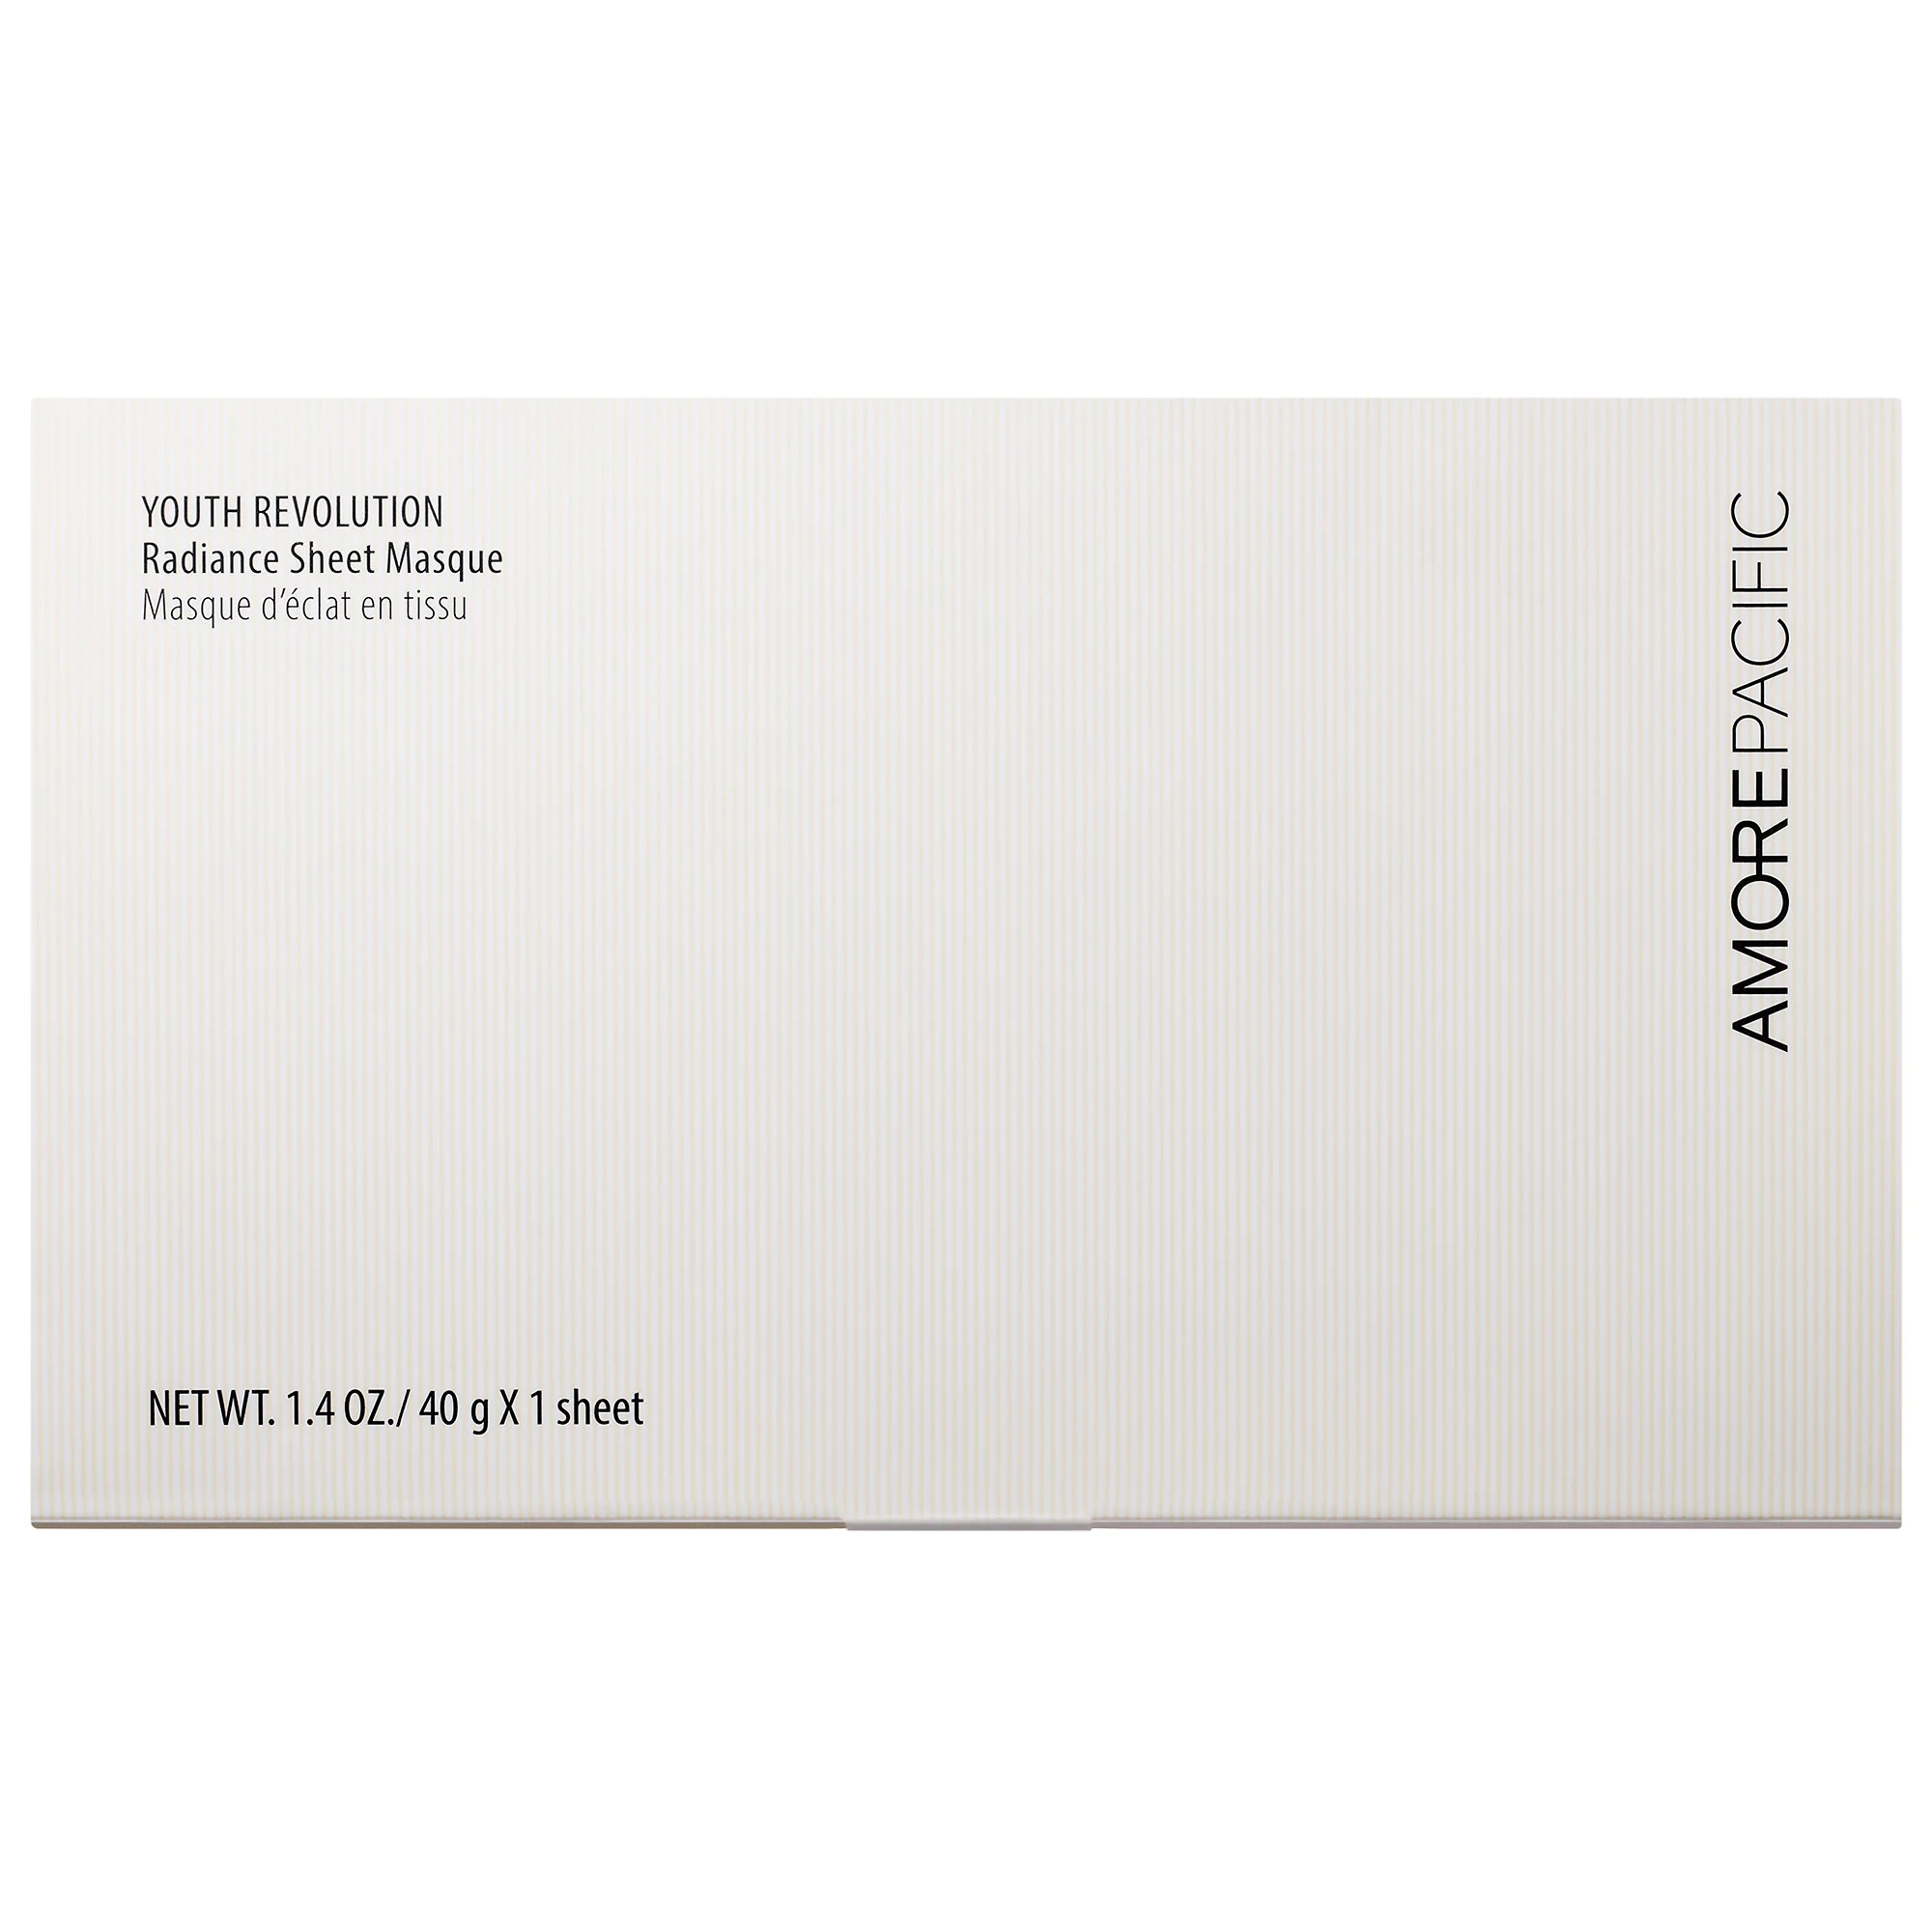 AMOREPACIFIC Youth Revolution Radiance Sheet Masque